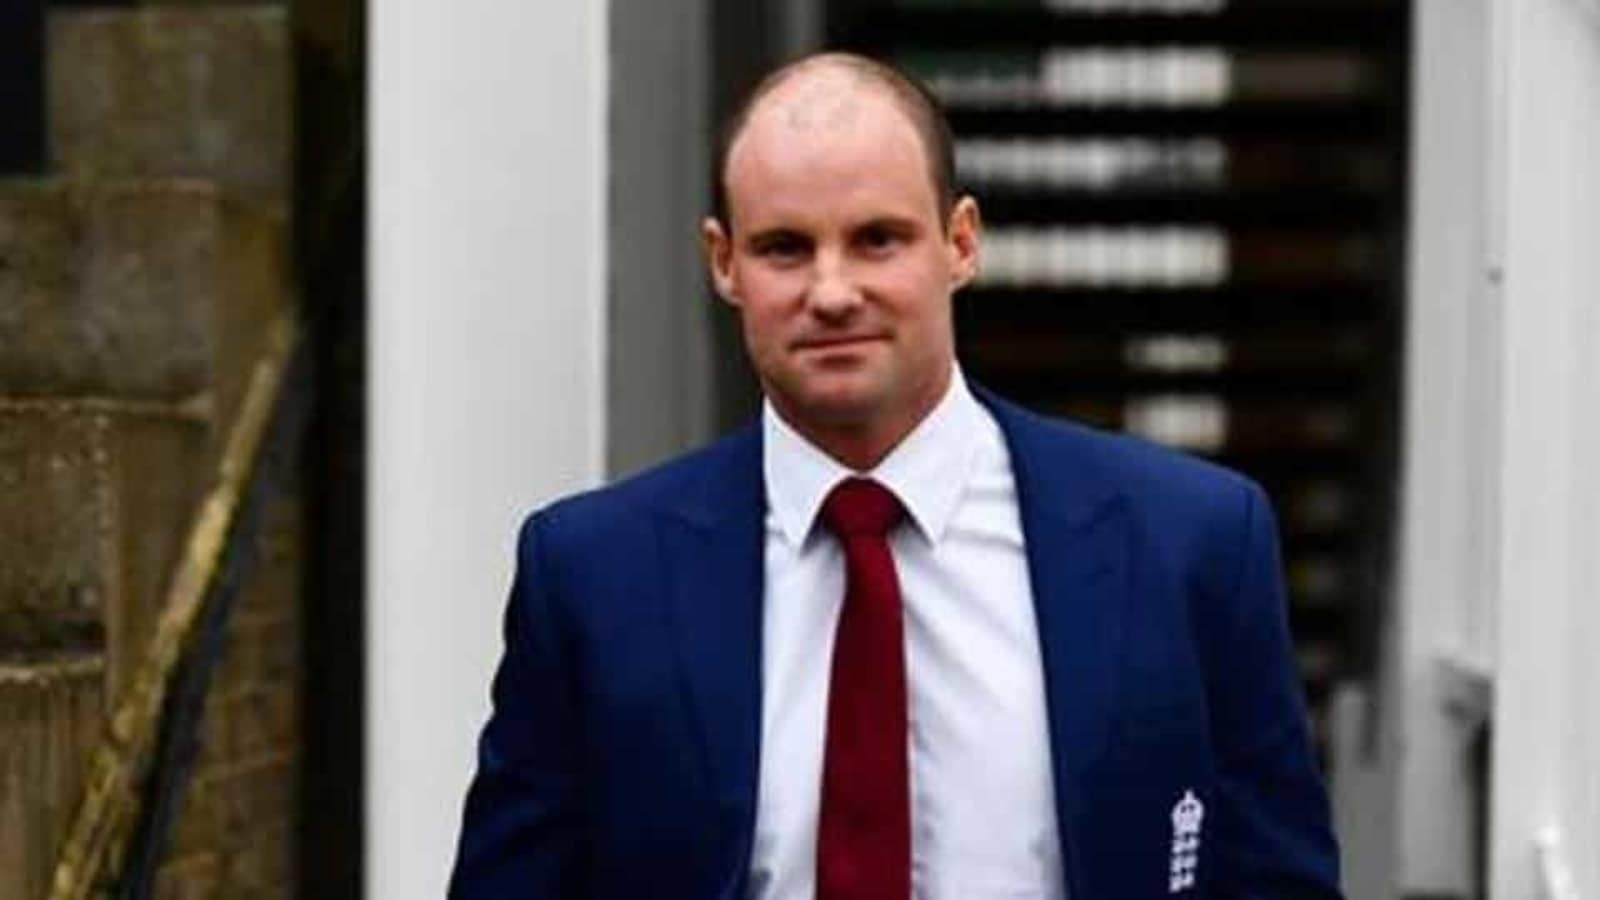 'You can think of all sorts of excuses': Andrew Strauss reveals reasons behind England's batting struggles in India - Hindustan Times